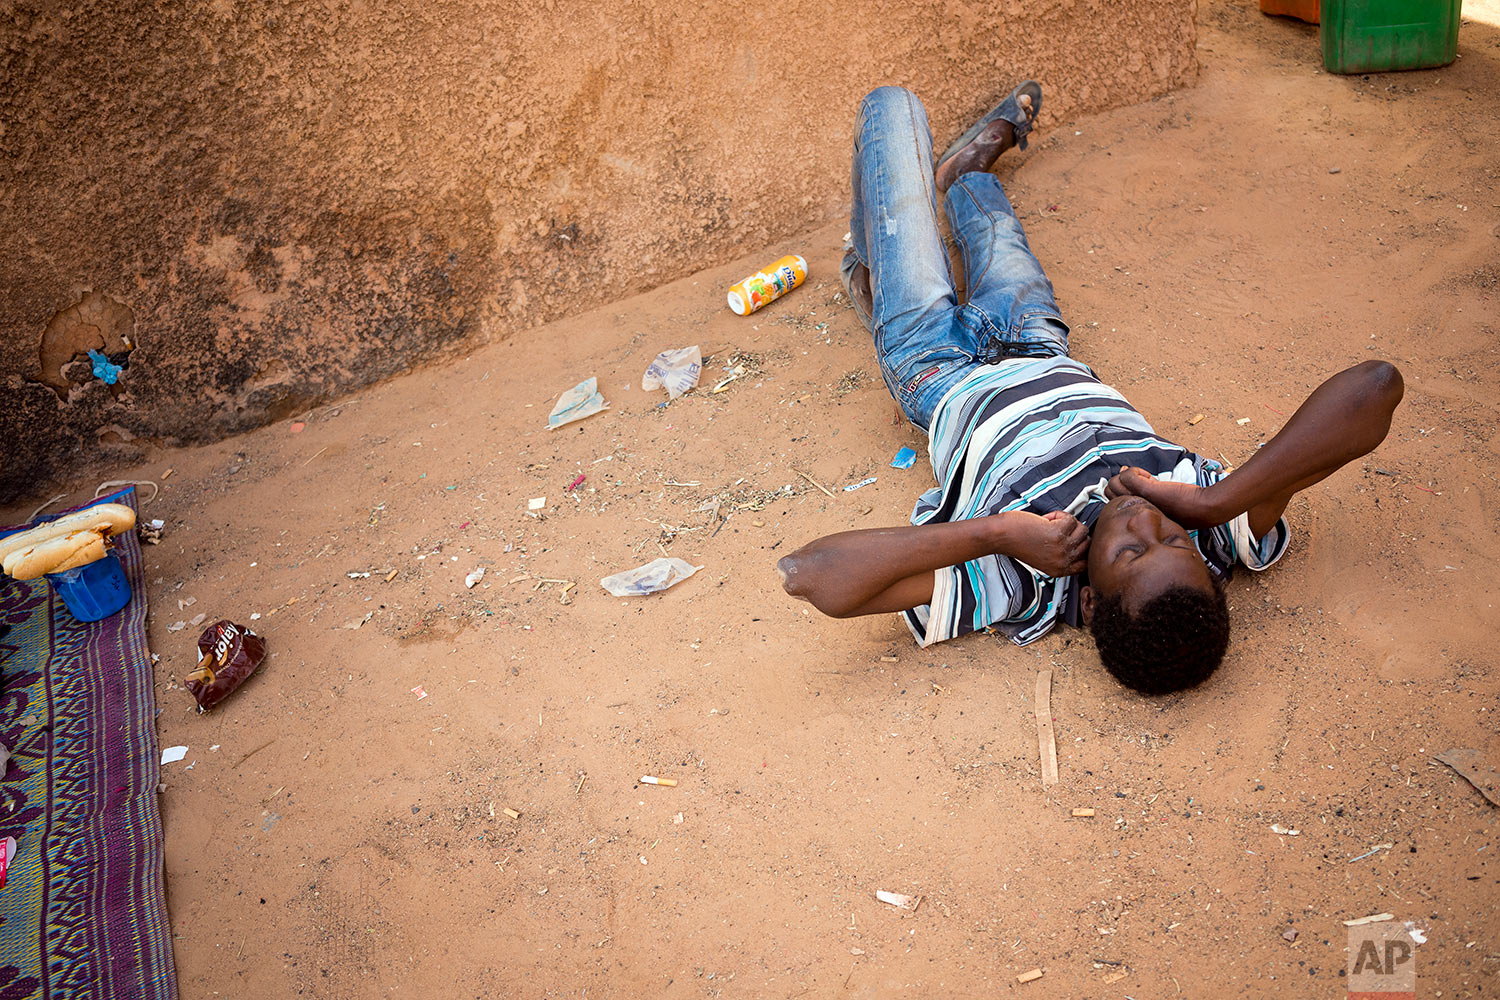 A young migrant who has been expelled from Algeria lays after being restrained by others after he attempted to strip naked in a transit center in Arlit, Niger, on June 2, 2018. (AP Photo/Jerome Delay)